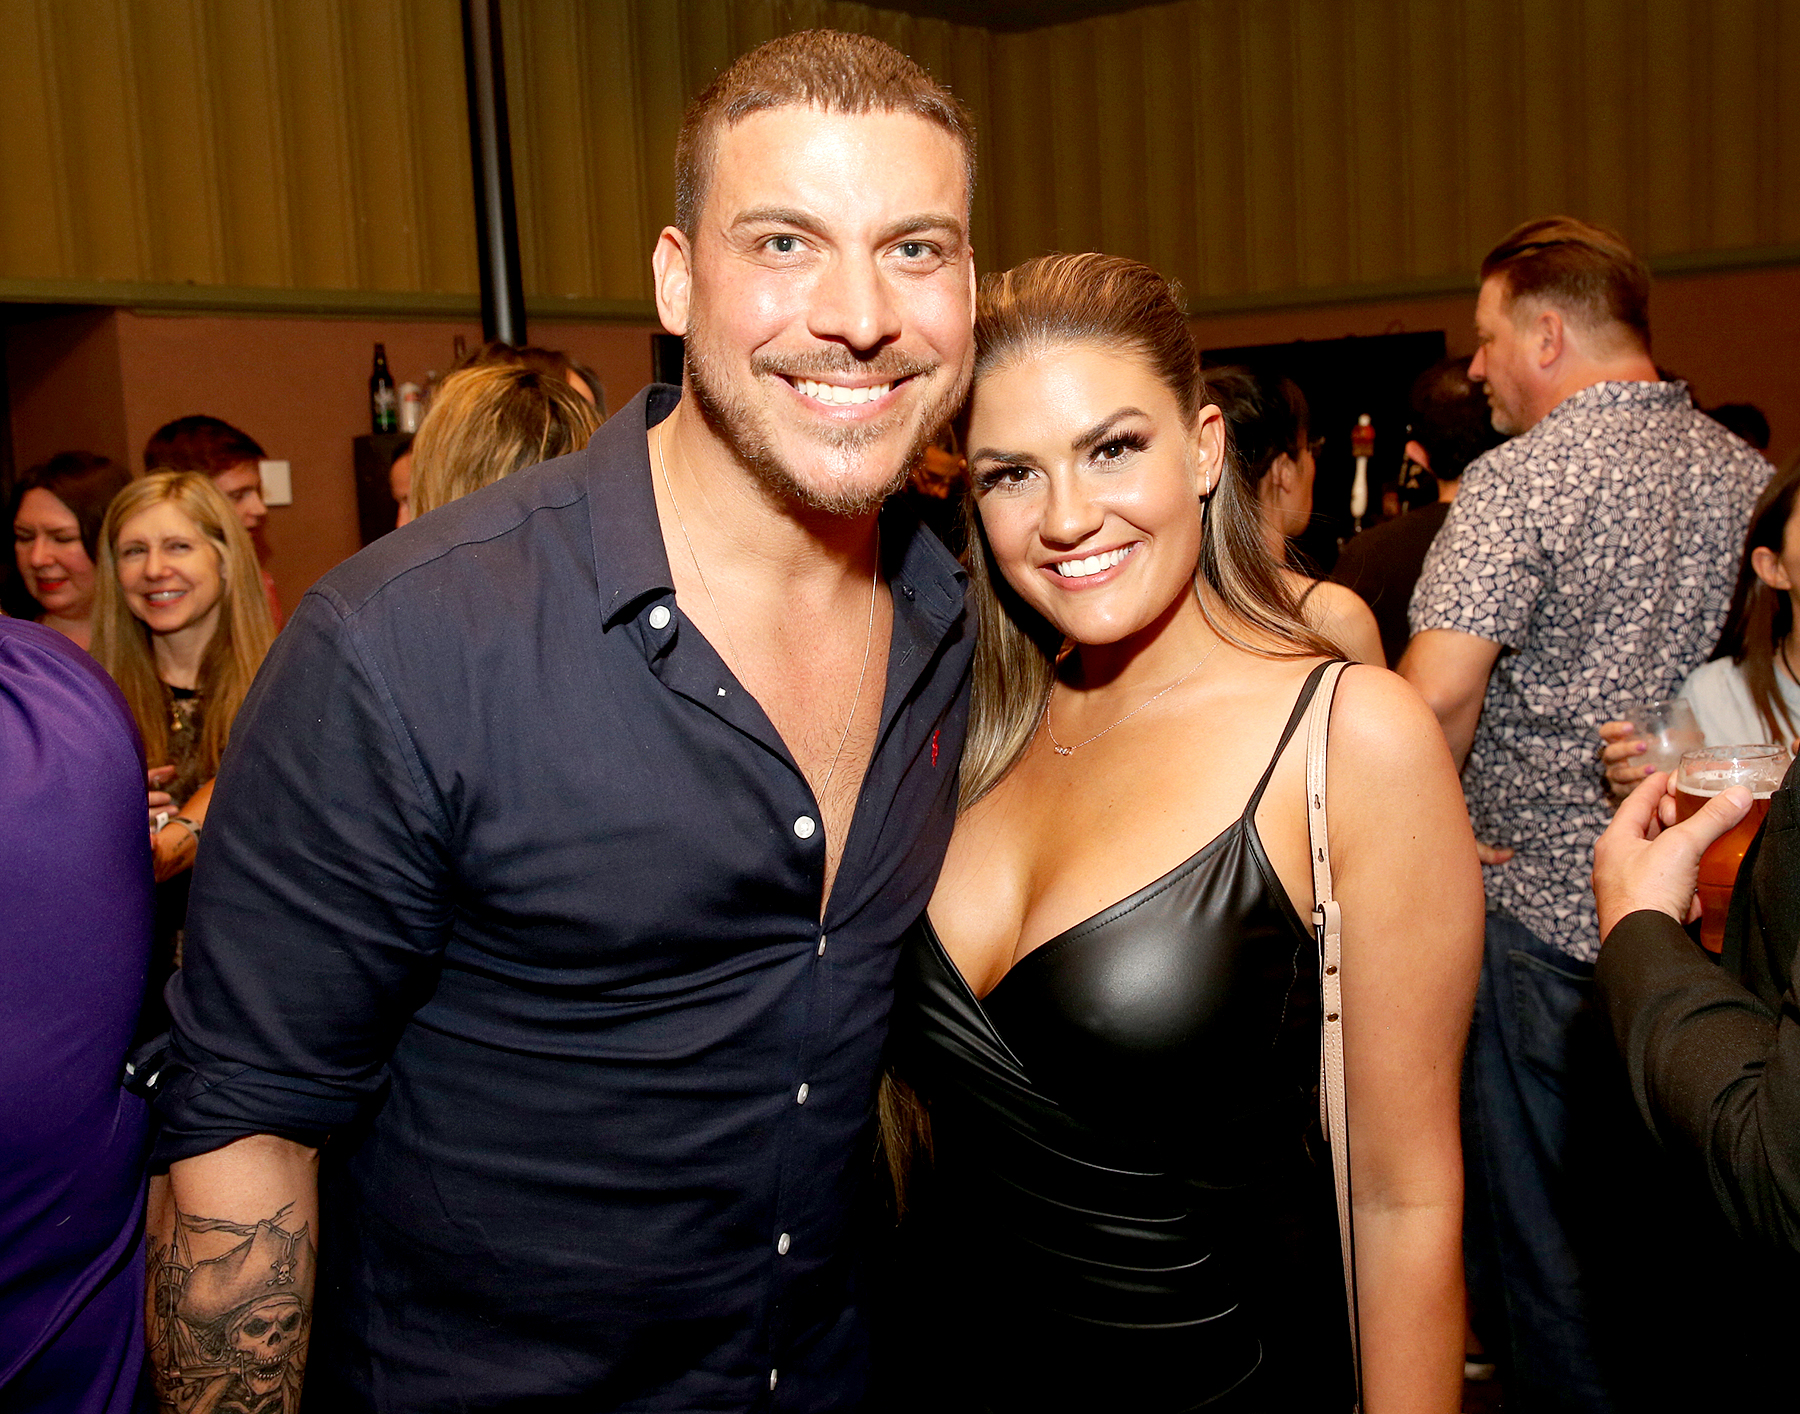 Who is jax from vanderpump rules dating now